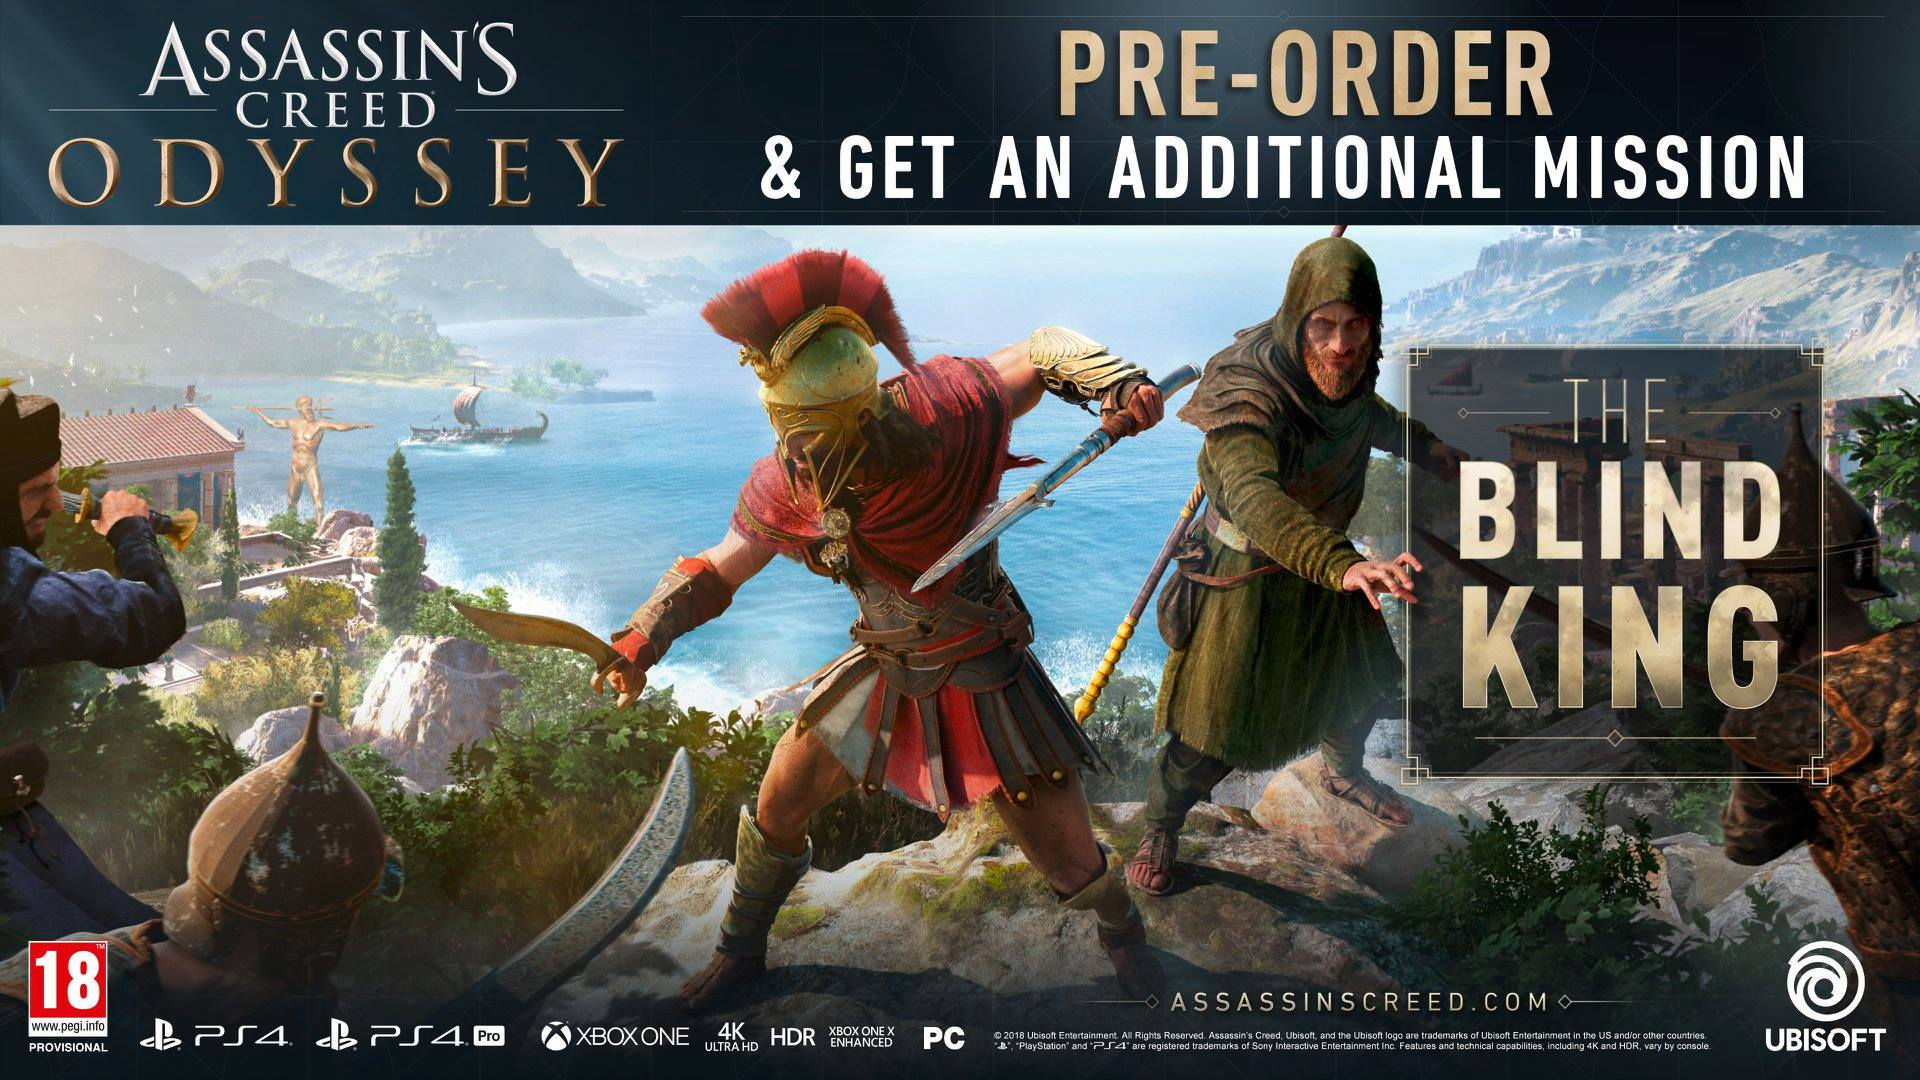 Assassin's Creed Odyssey patch 1.02 detailed, full release notes revealed